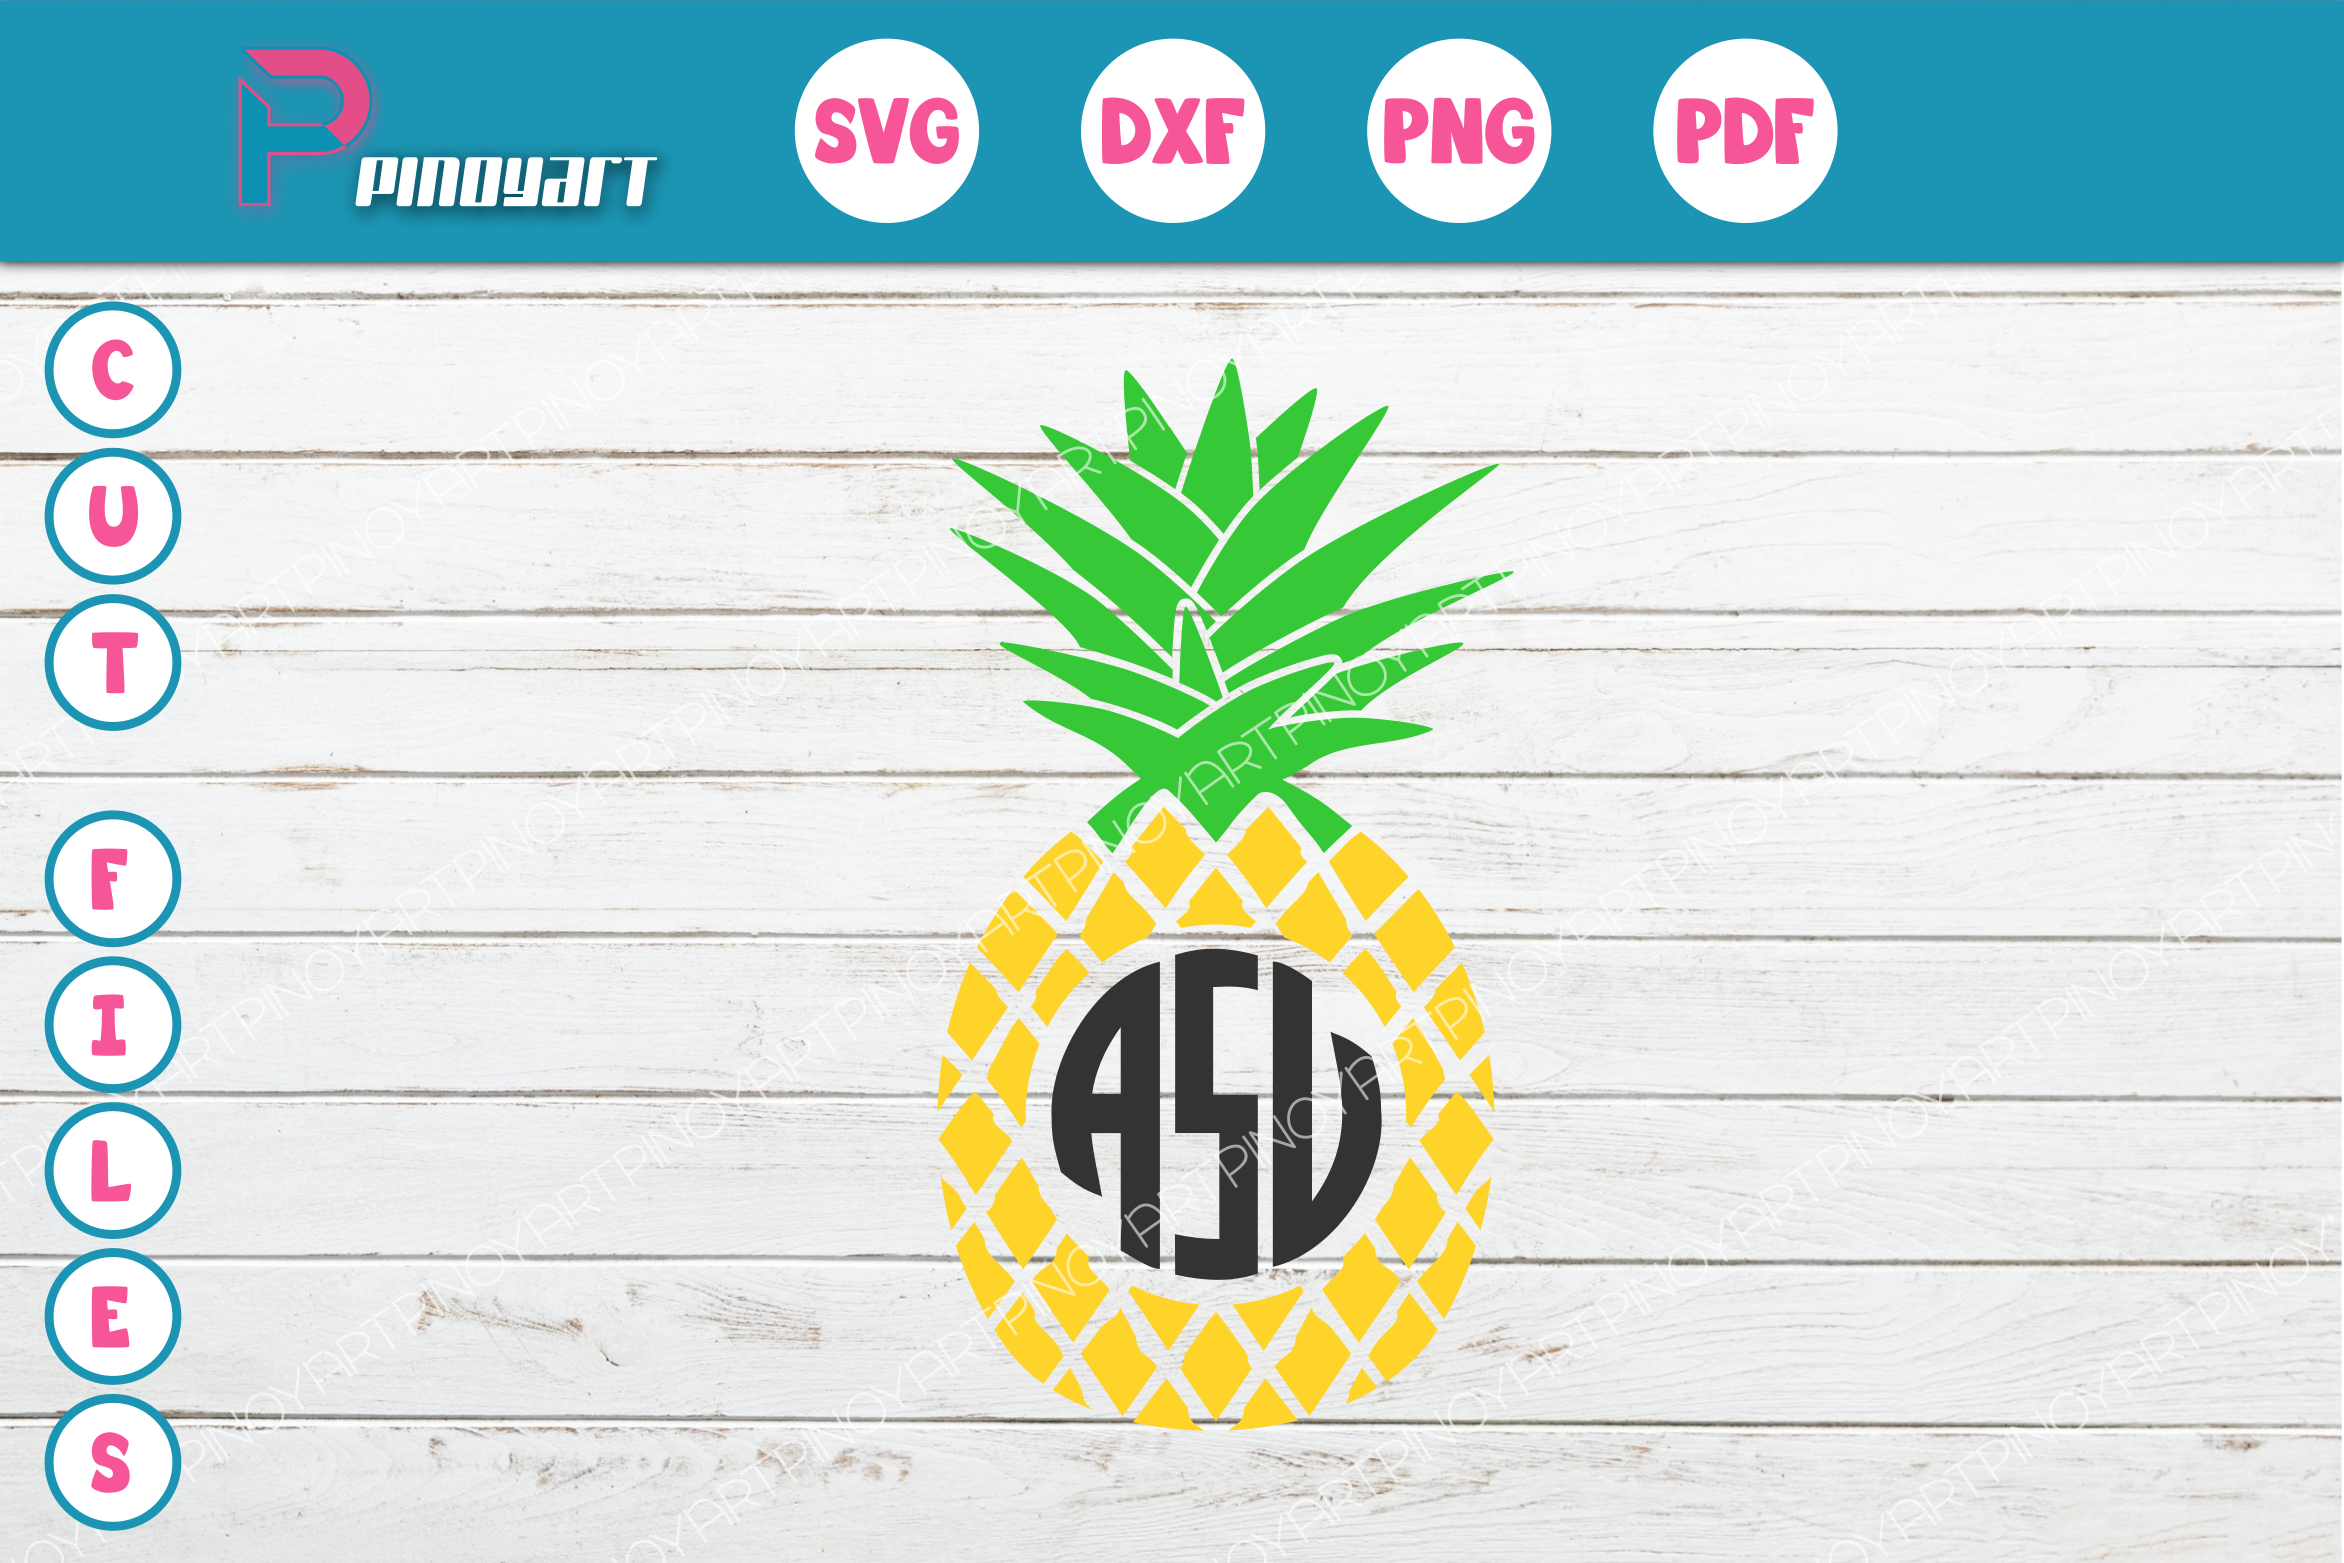 pineapple monogram svg free #264, Download drawings